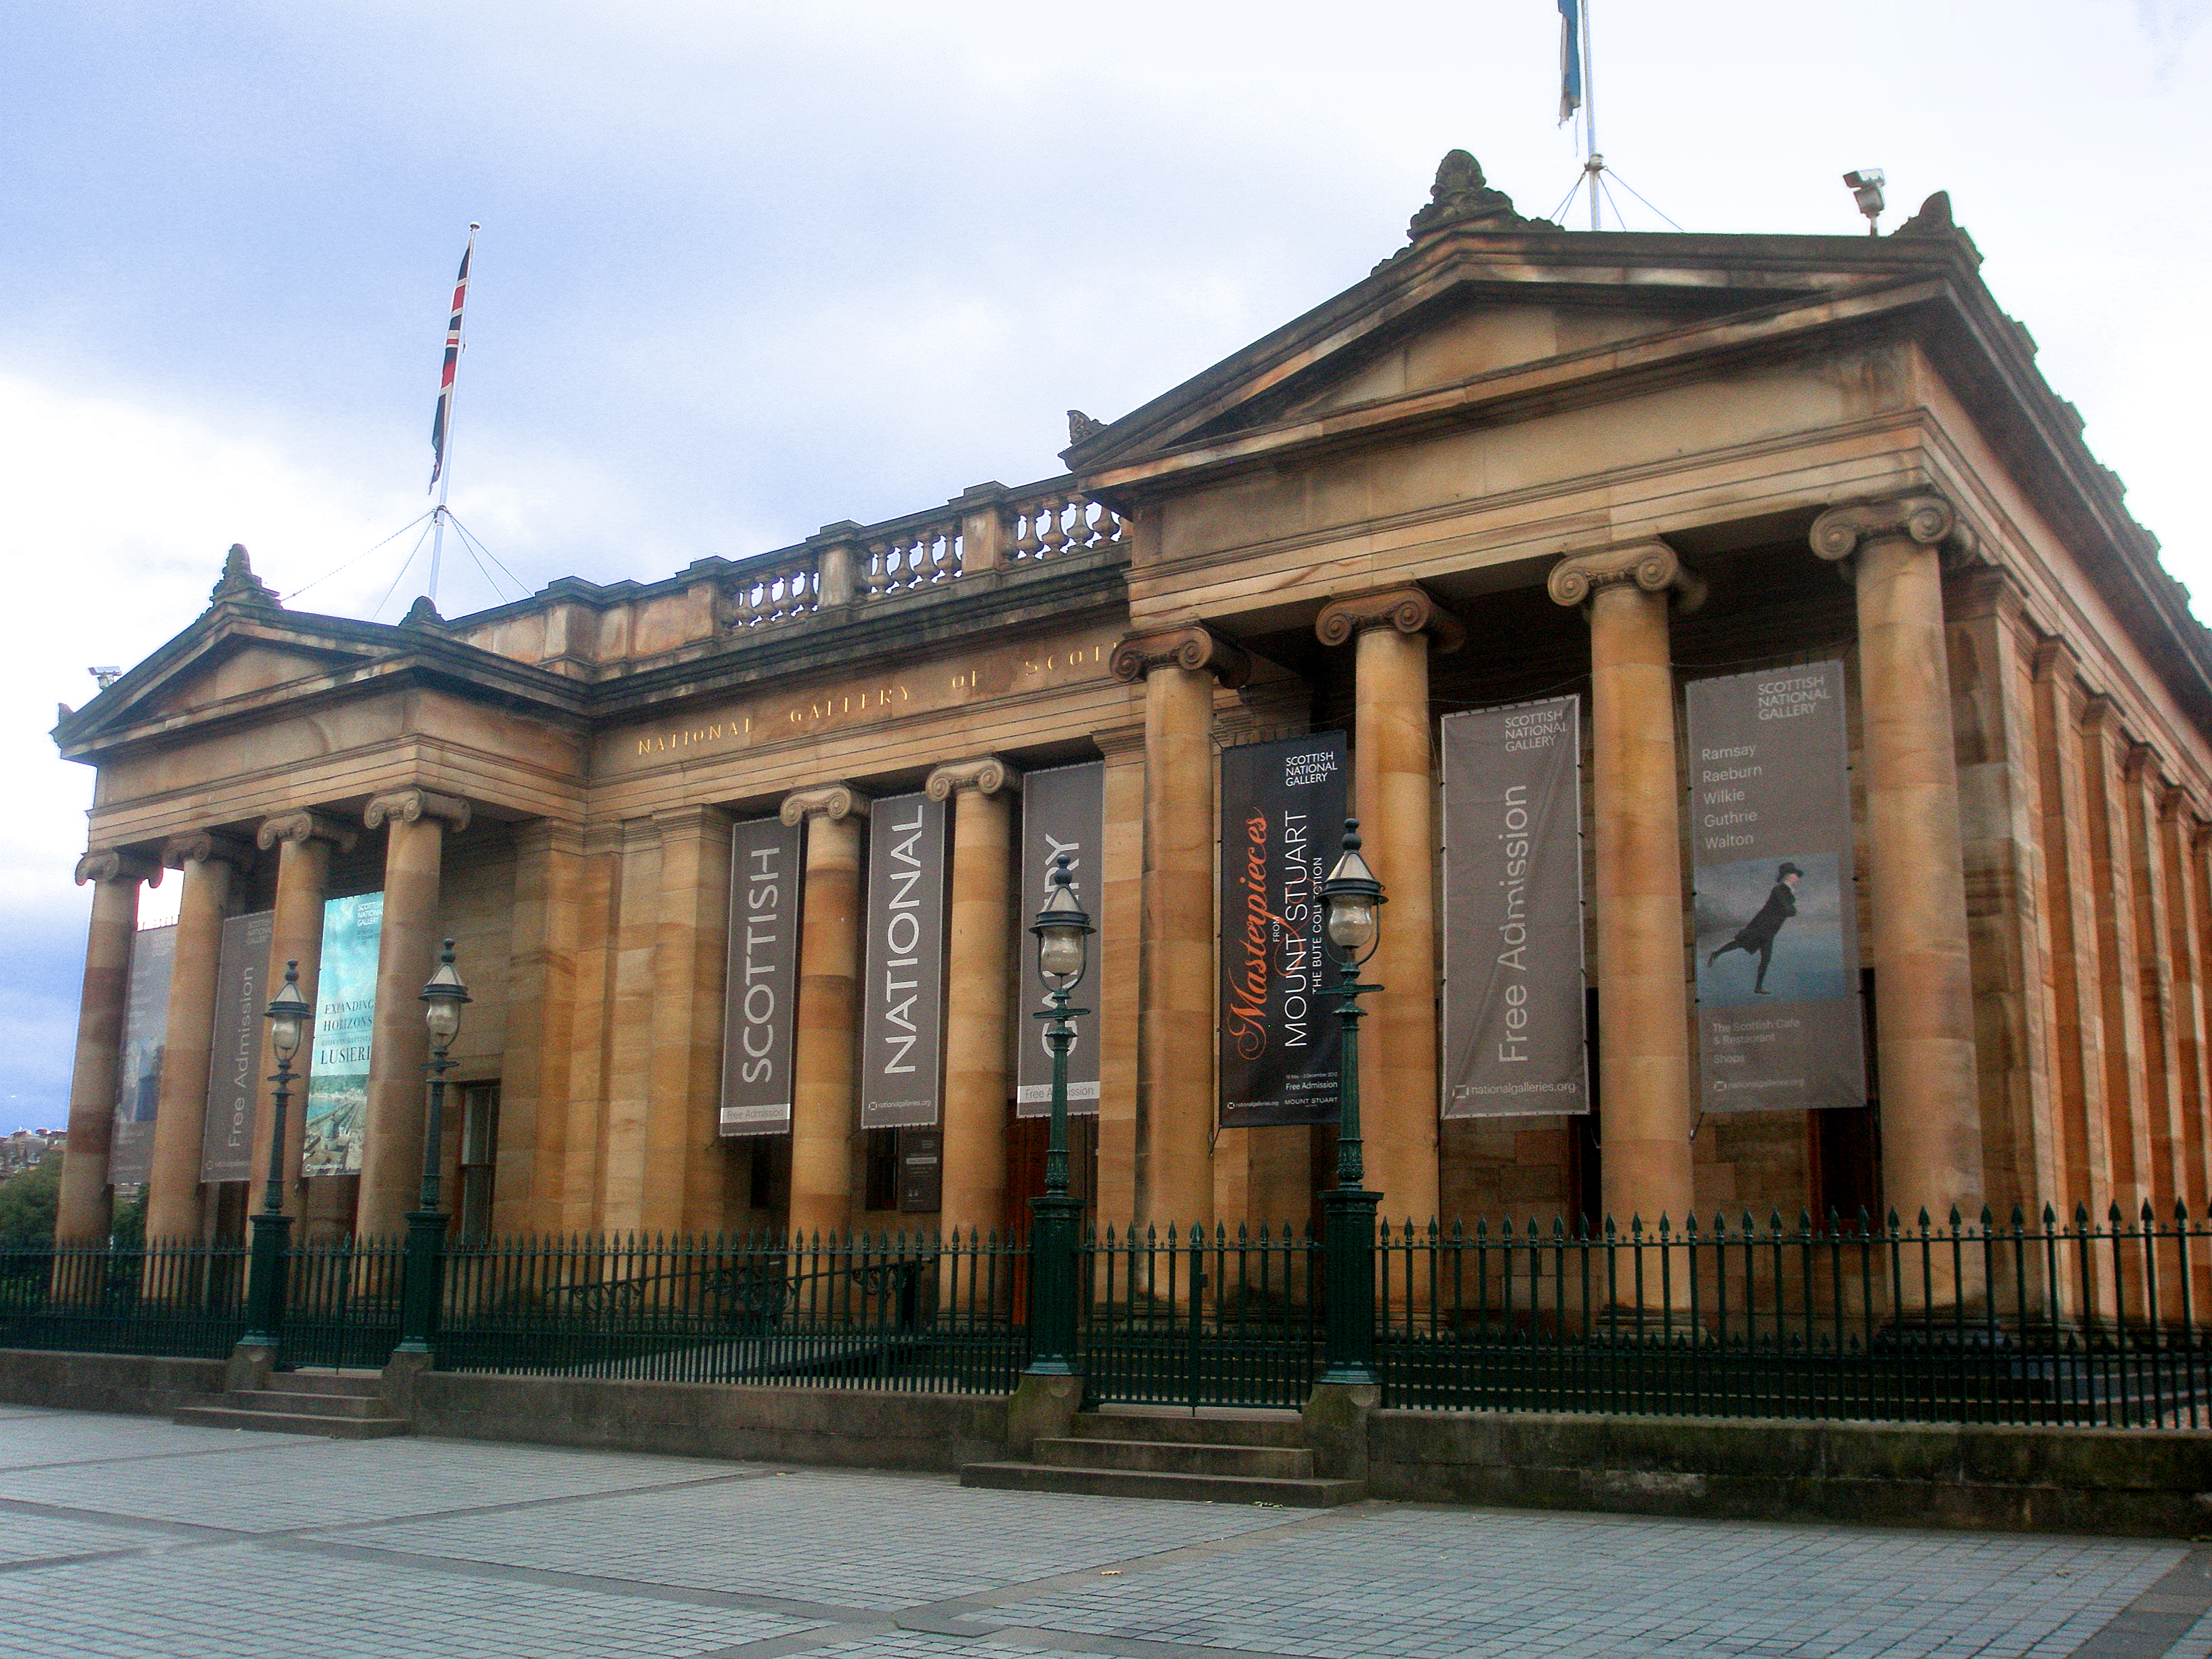 File:Scottish National Gallery.jpg